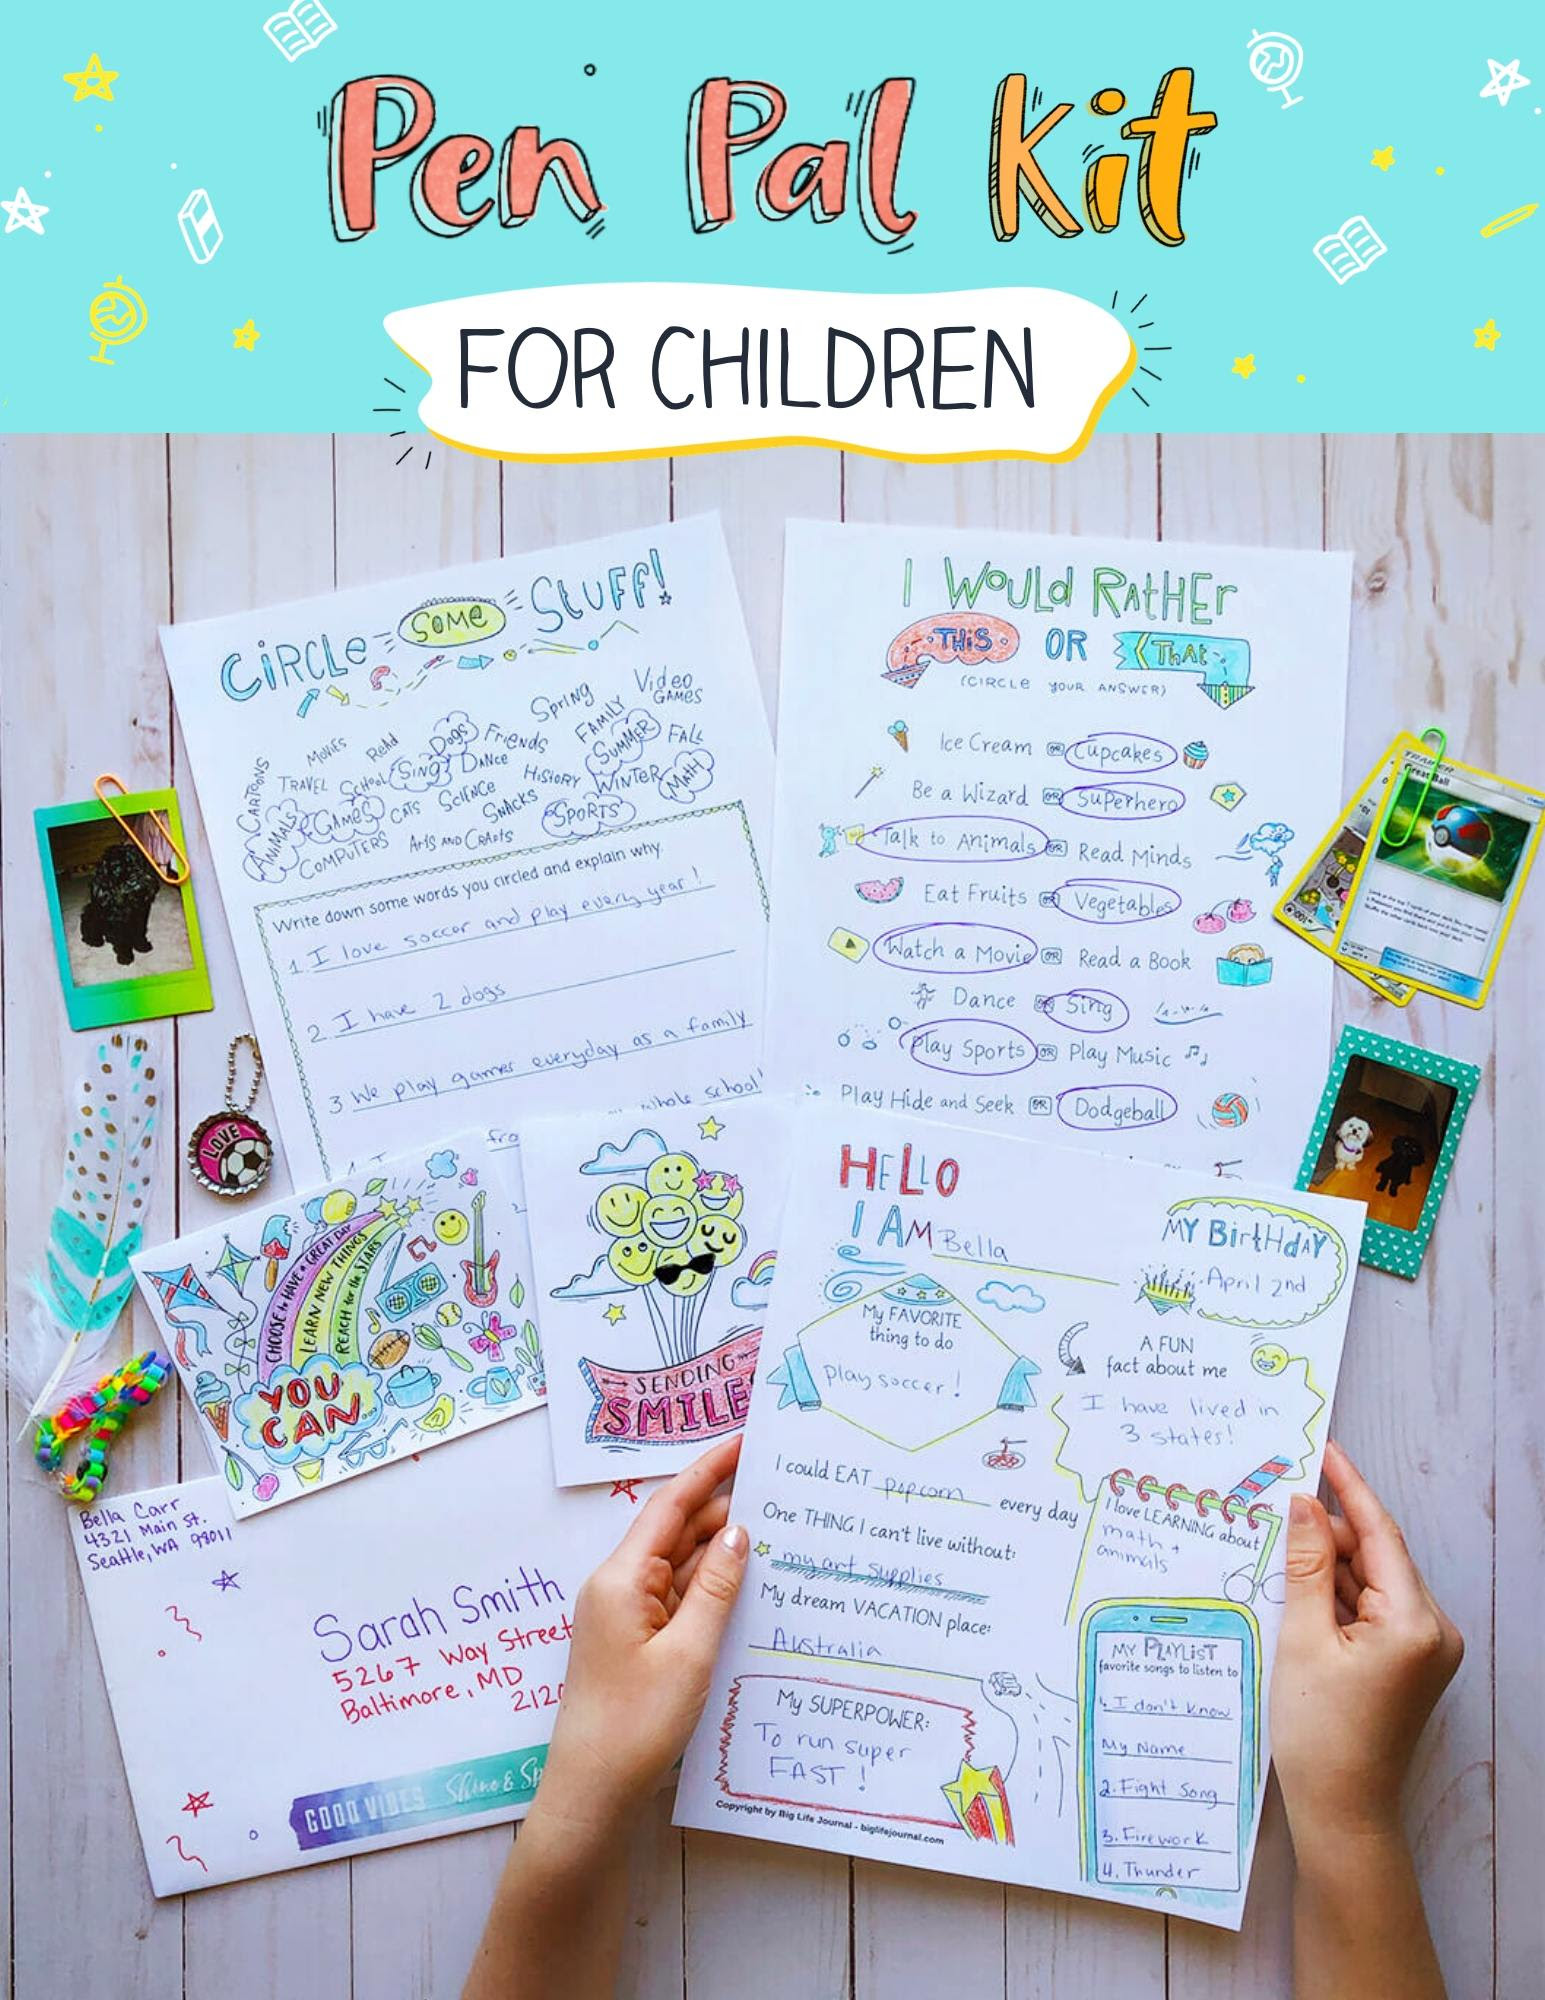 Pen Pal Kit for Children